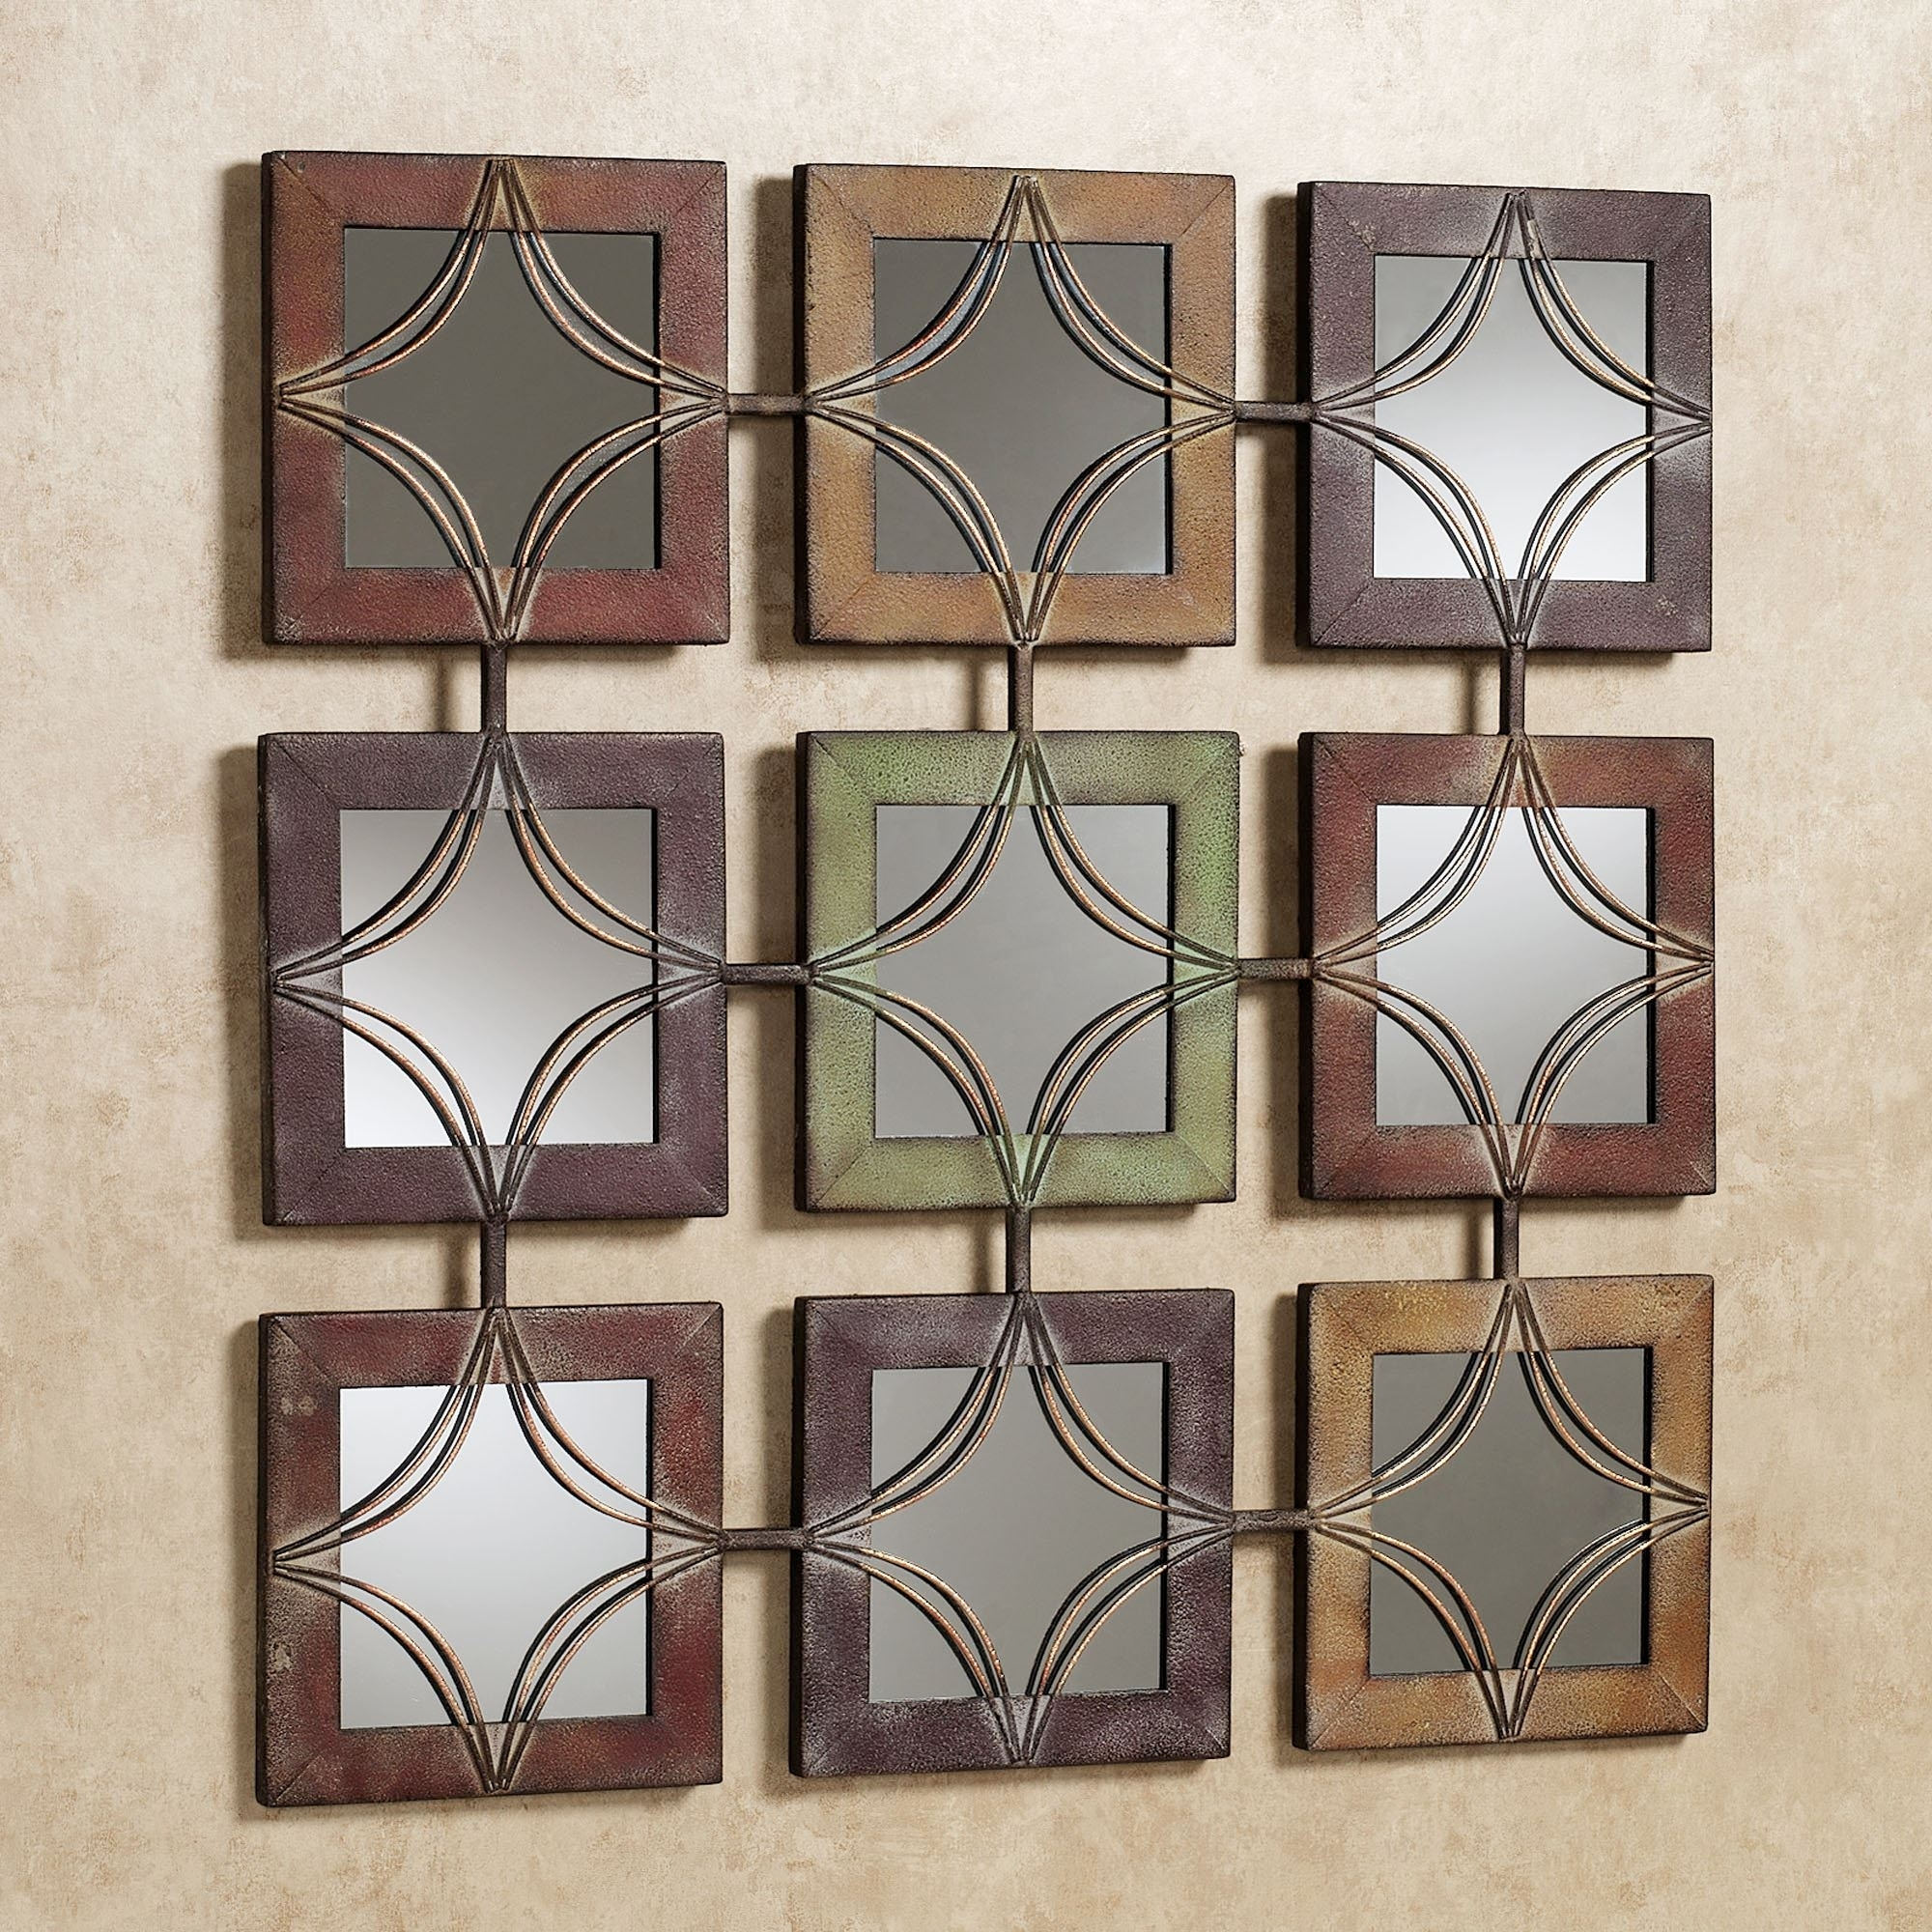 Domini Mirrored Metal Wall Art Inside Latest Metal Wall Accents (View 4 of 15)